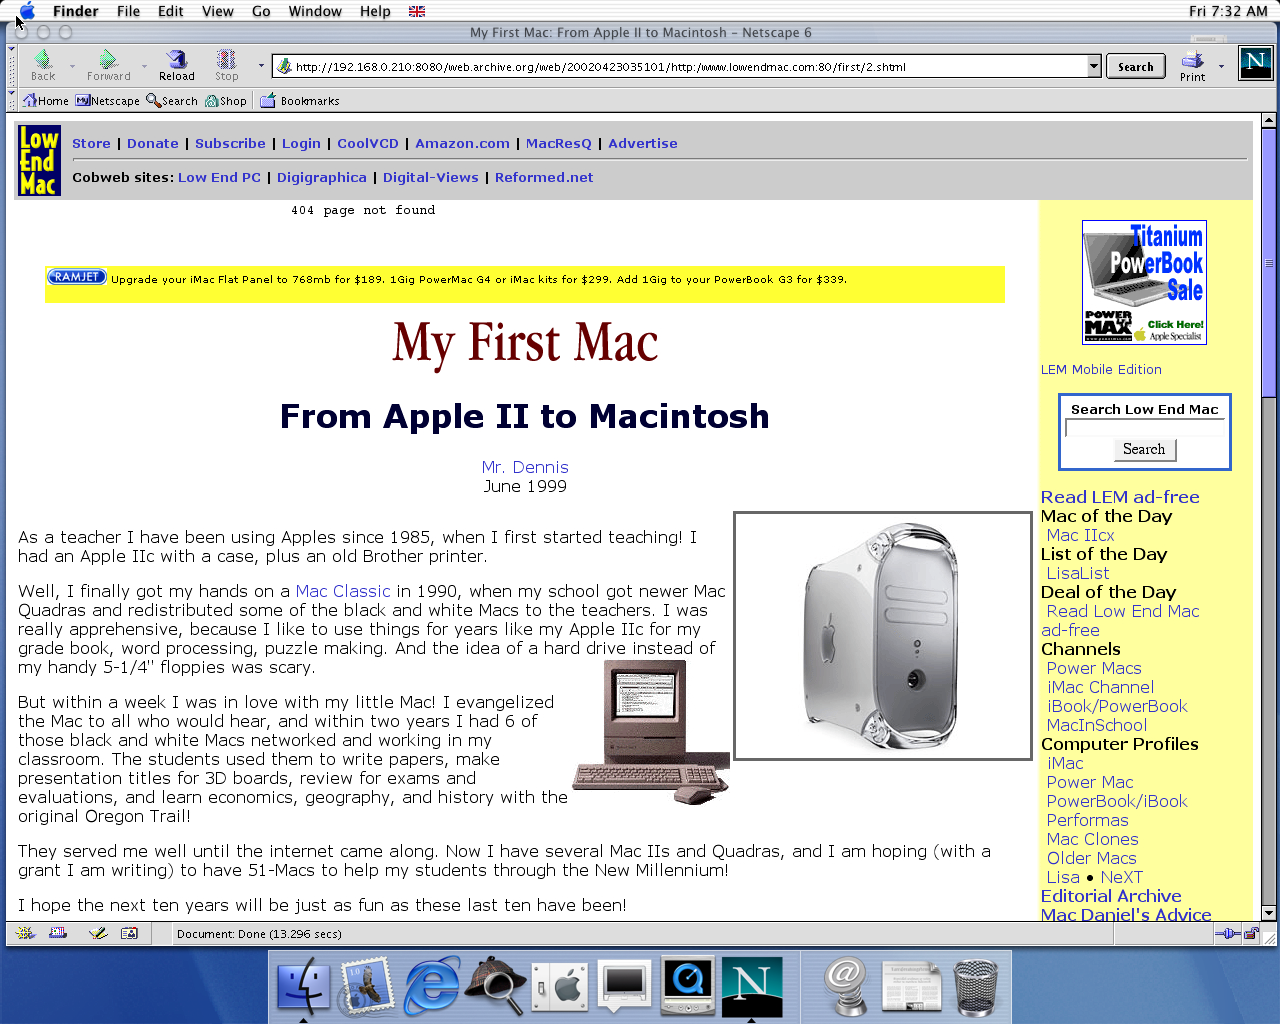 OS X 10.0 PPC with Netscape 6.1 displaying a page from Low End Mac archived at April 23, 2002 at 03:51:01